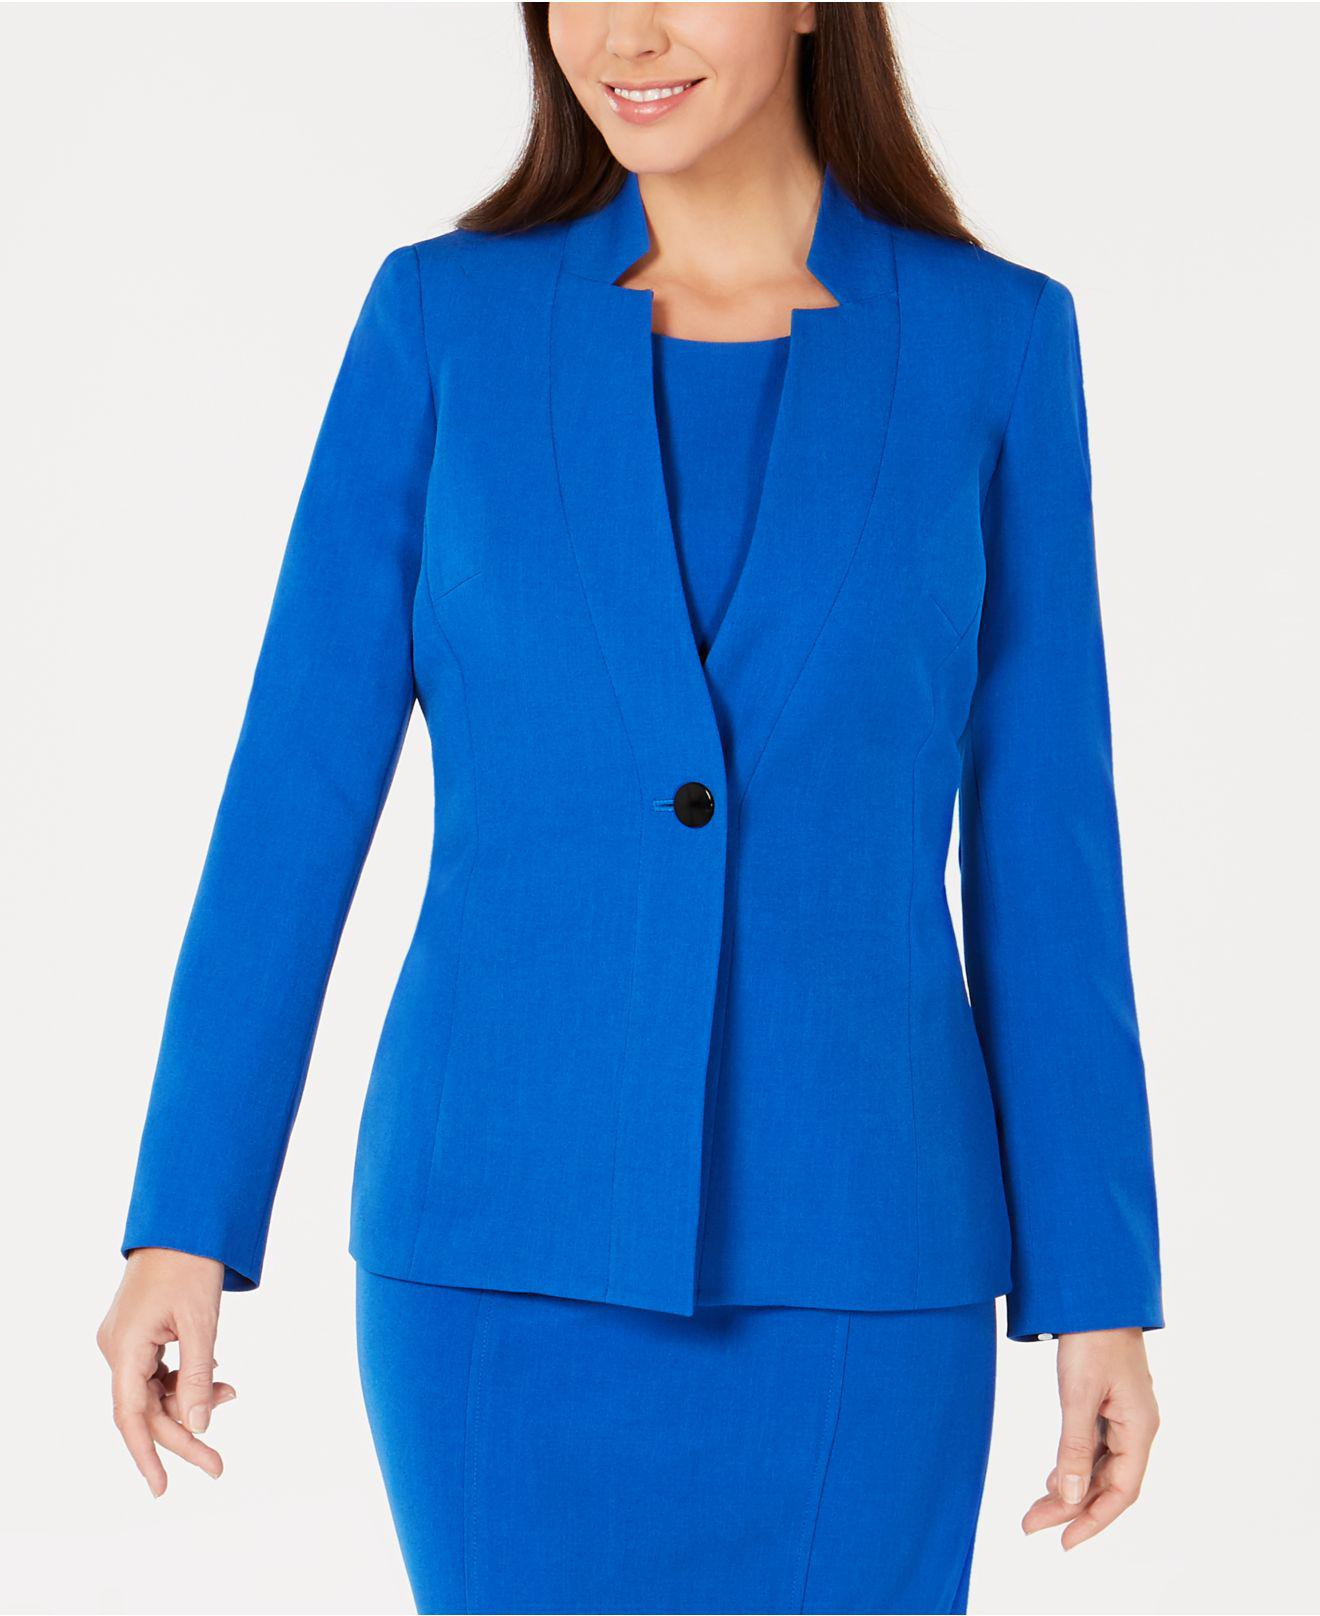 bff2b994fc8 Lyst - Kasper Inverted-collar One-button Jacket in Blue